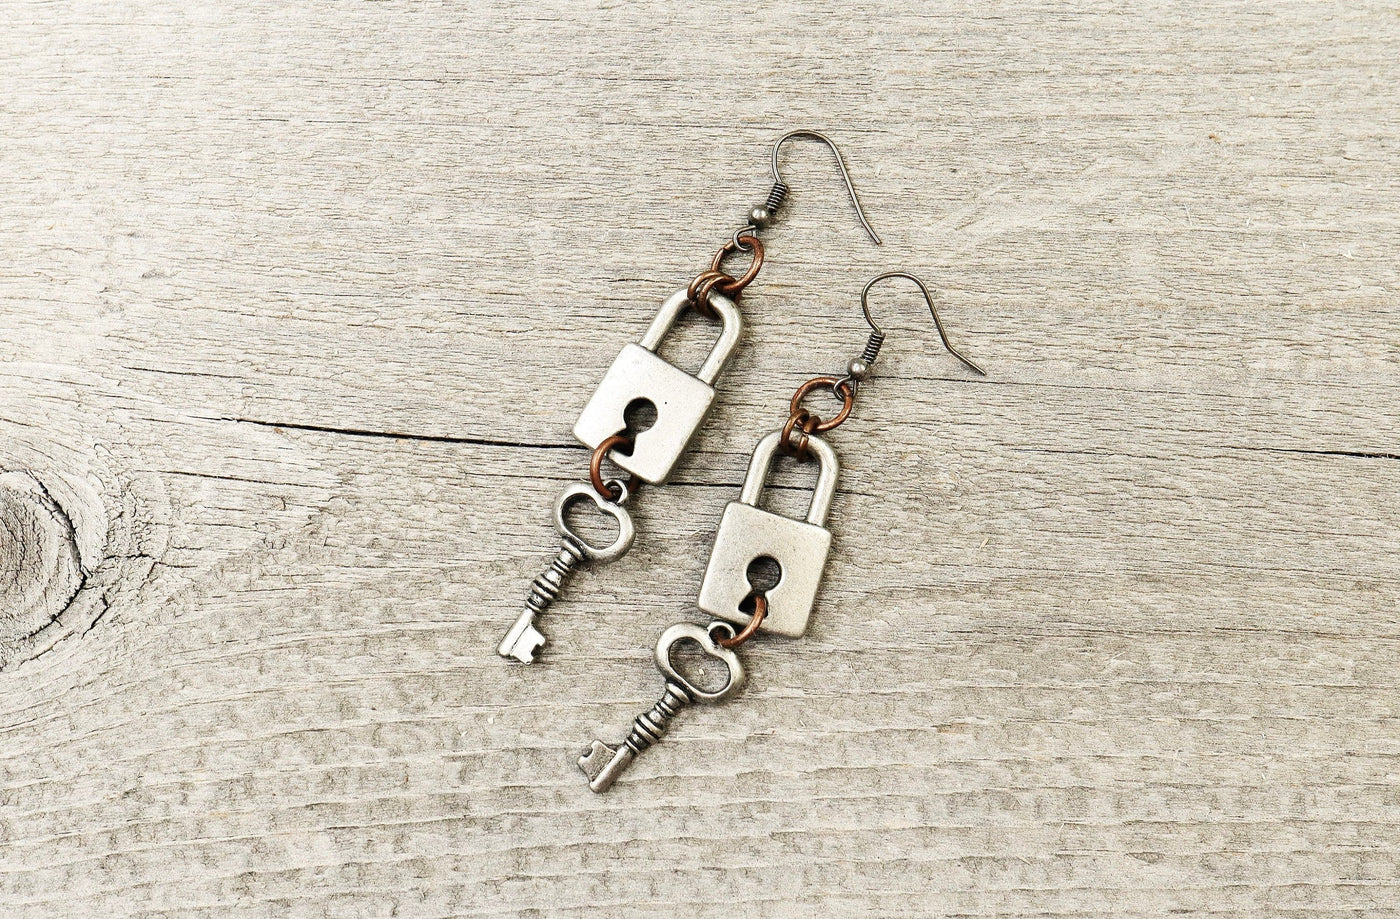 Vintage Key Lock Boho Earrings - Antique Silver Dangle Cute Lovely Metal Steampunk Gypsy Hippie Unique Bohemian Rustic Handmade Jewelry